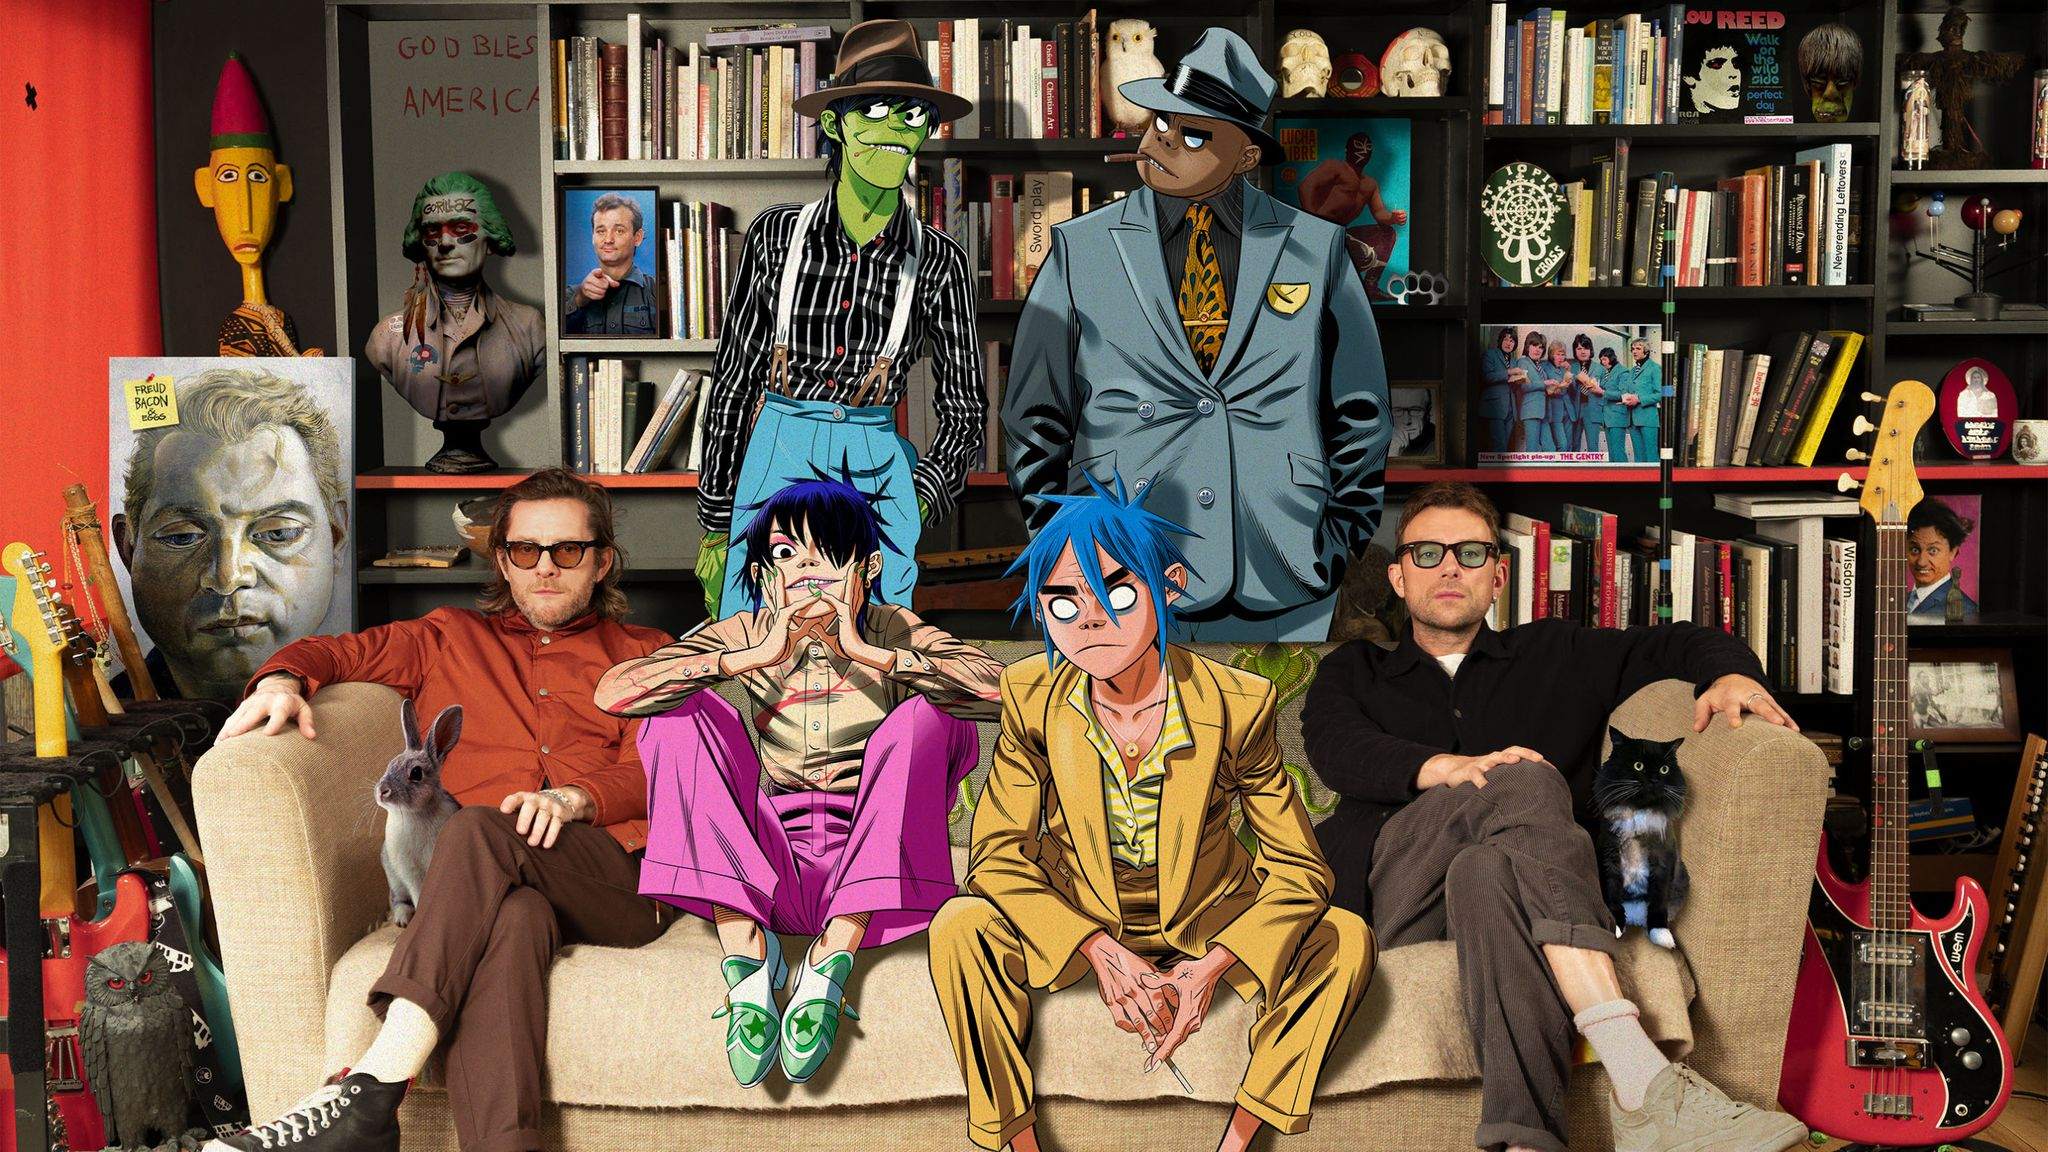 Damon Albarn and Jamie Hewlett, along with their cartoon creations Noodle, 2D, Murdoc and Russel. Pic: Gorillaz/Michael Leckie